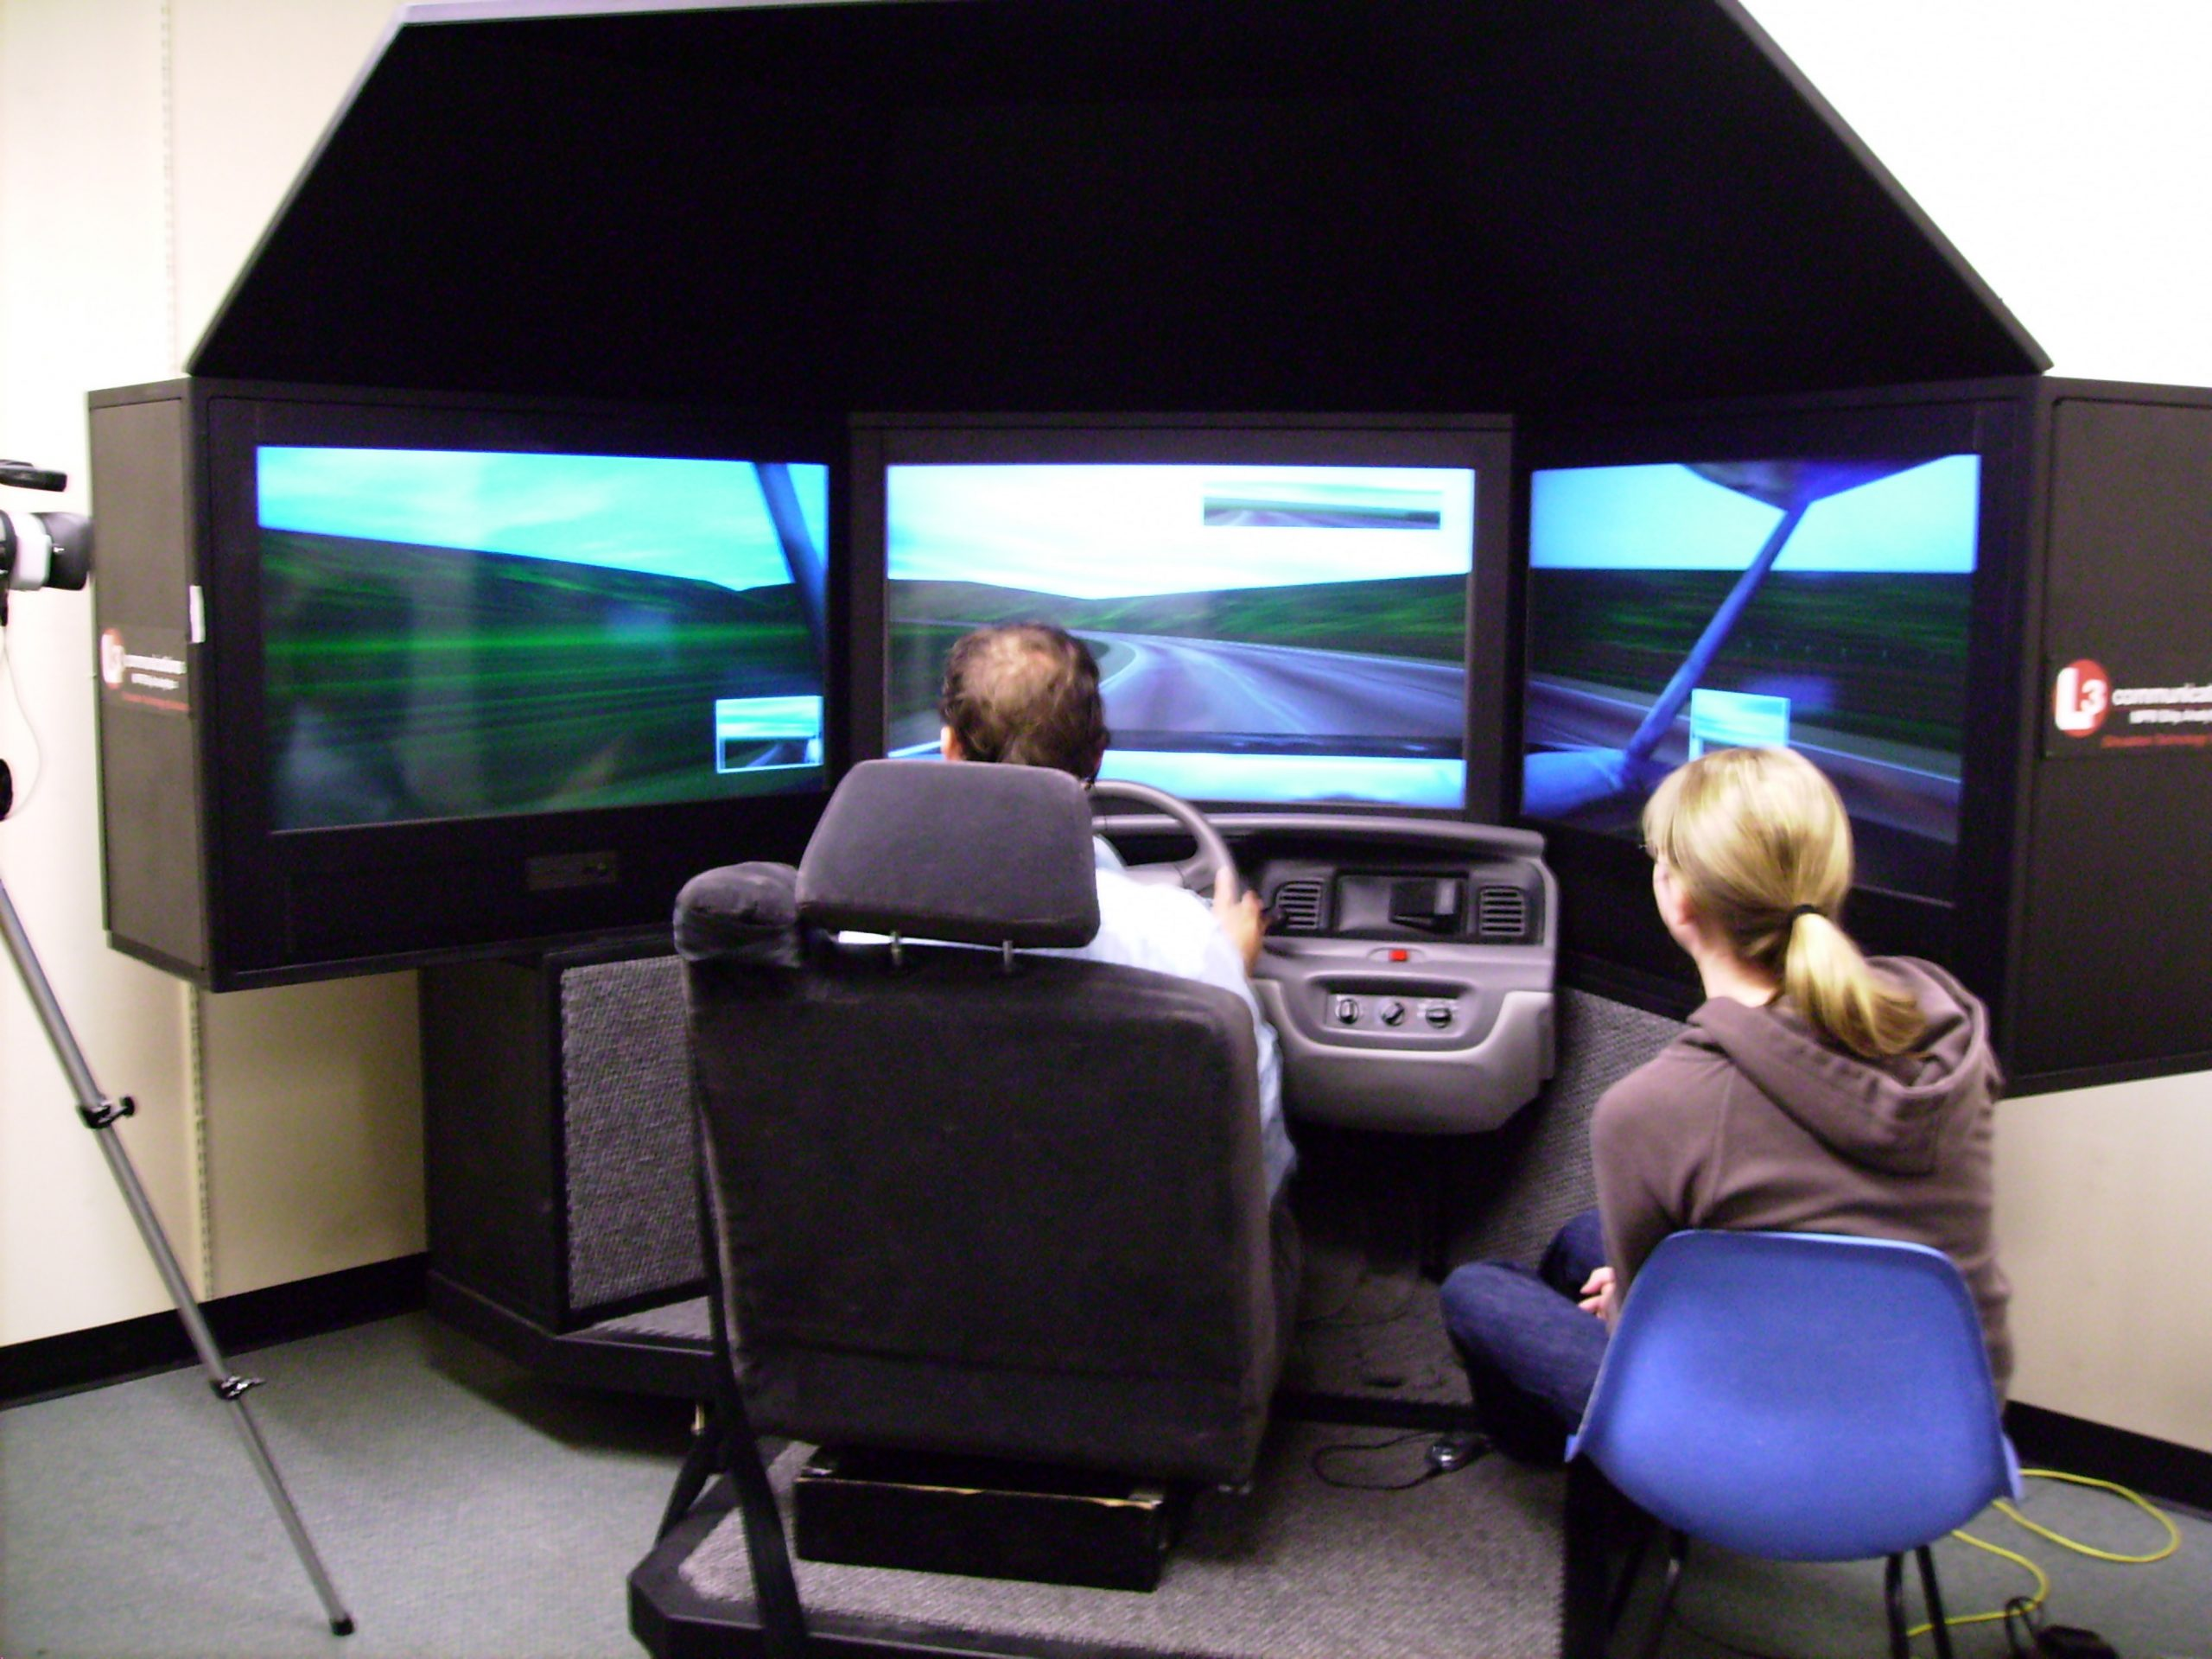 University of Utah psychology graduate students Russ Costa and Janelle Seegmiller demonstrate the driver and passenger roles used by participants in a study of how drivers are affected by conversations with passengers versus conversations over a cell phone. The study, which used the sophisticated driving simulator shown in the photo, found that when drivers talk on cell phones, they are more likely to drift out of their lane and miss exits.